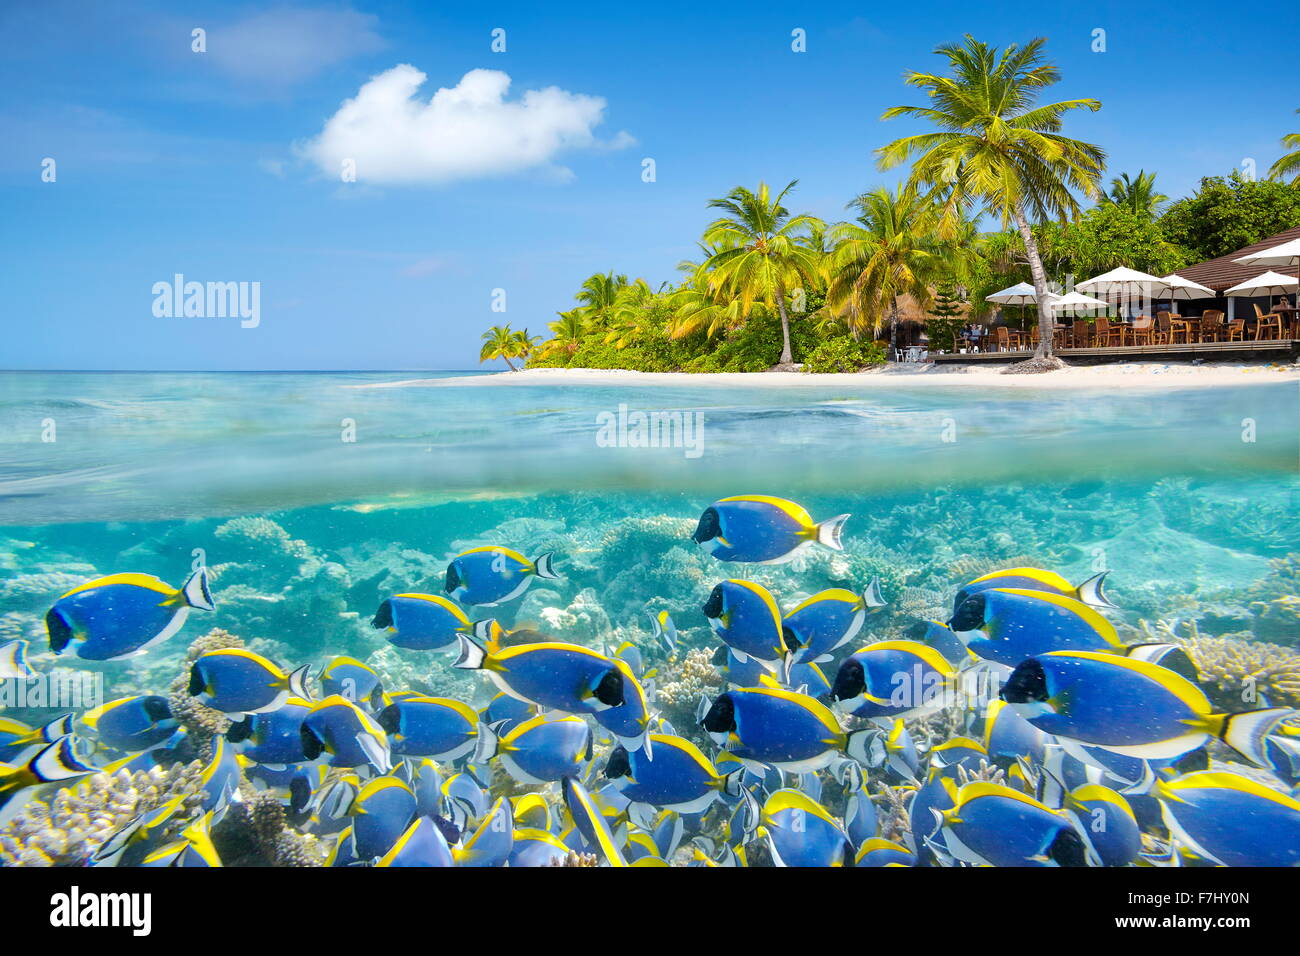 Maldives Island - underwater view with shoal of fish and reef - Stock Image